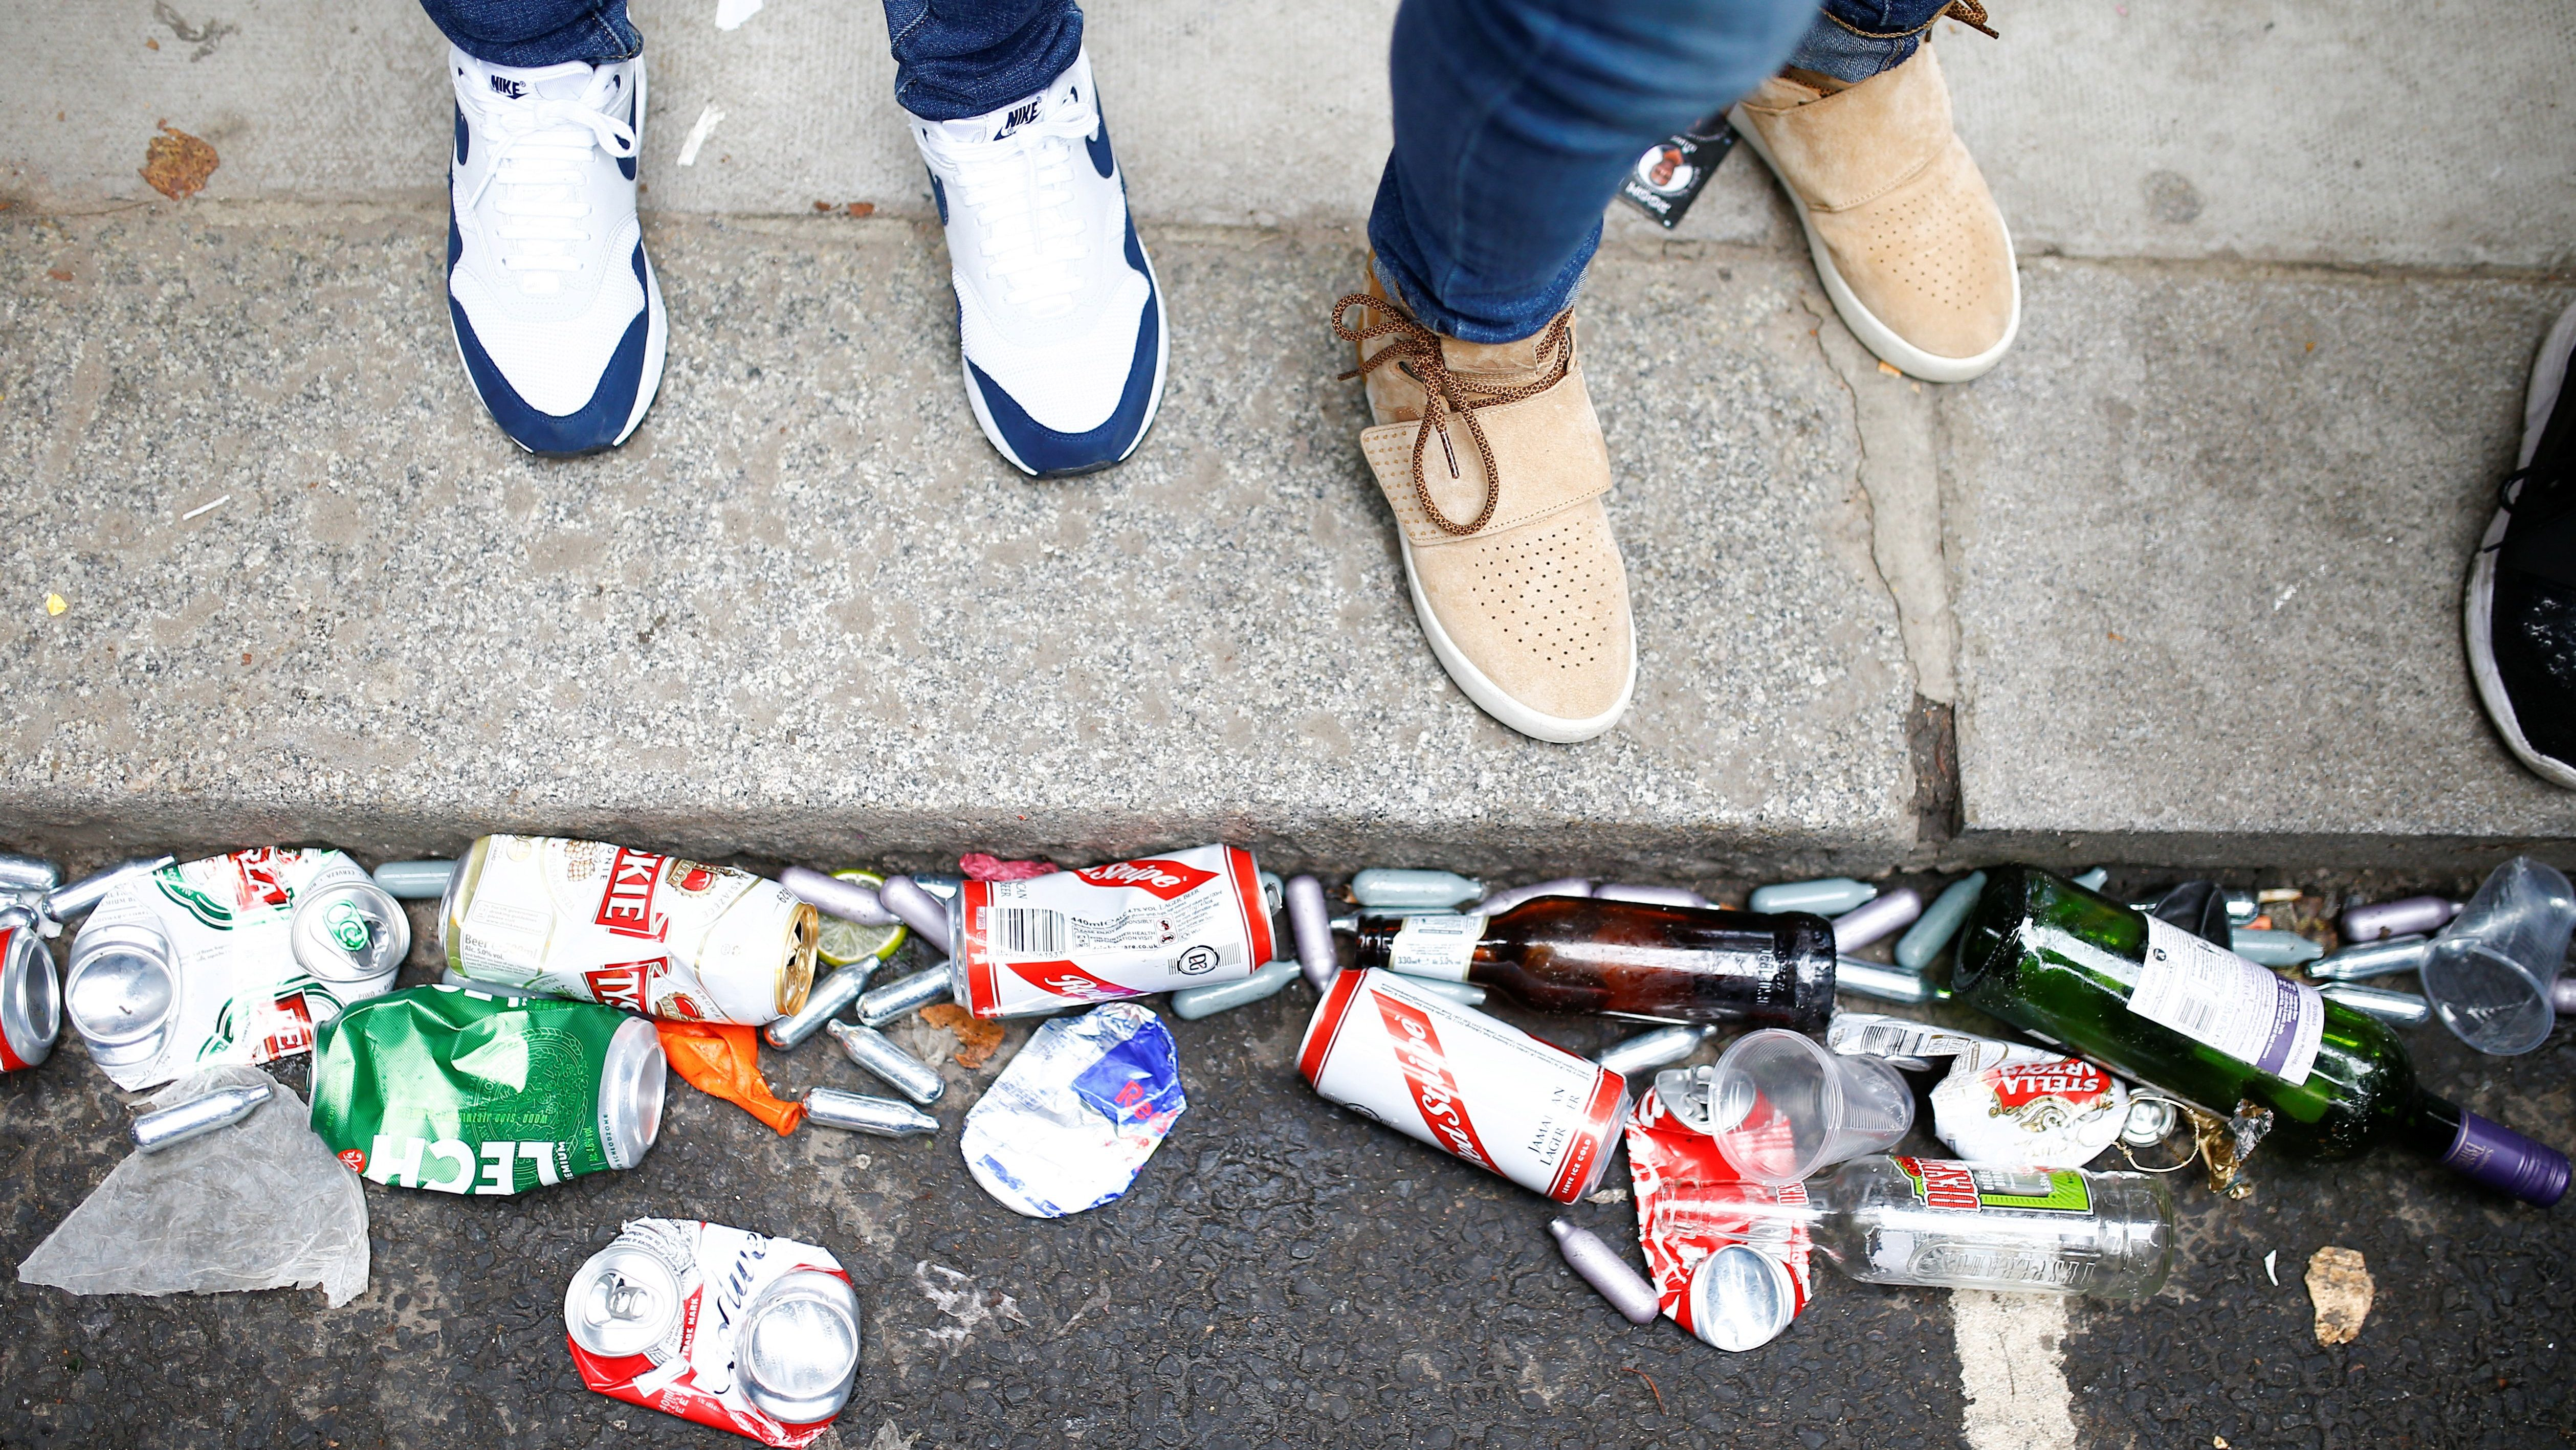 Empty canisters and beer cans can be seen on the ground during the Notting Hill Carnival in London.